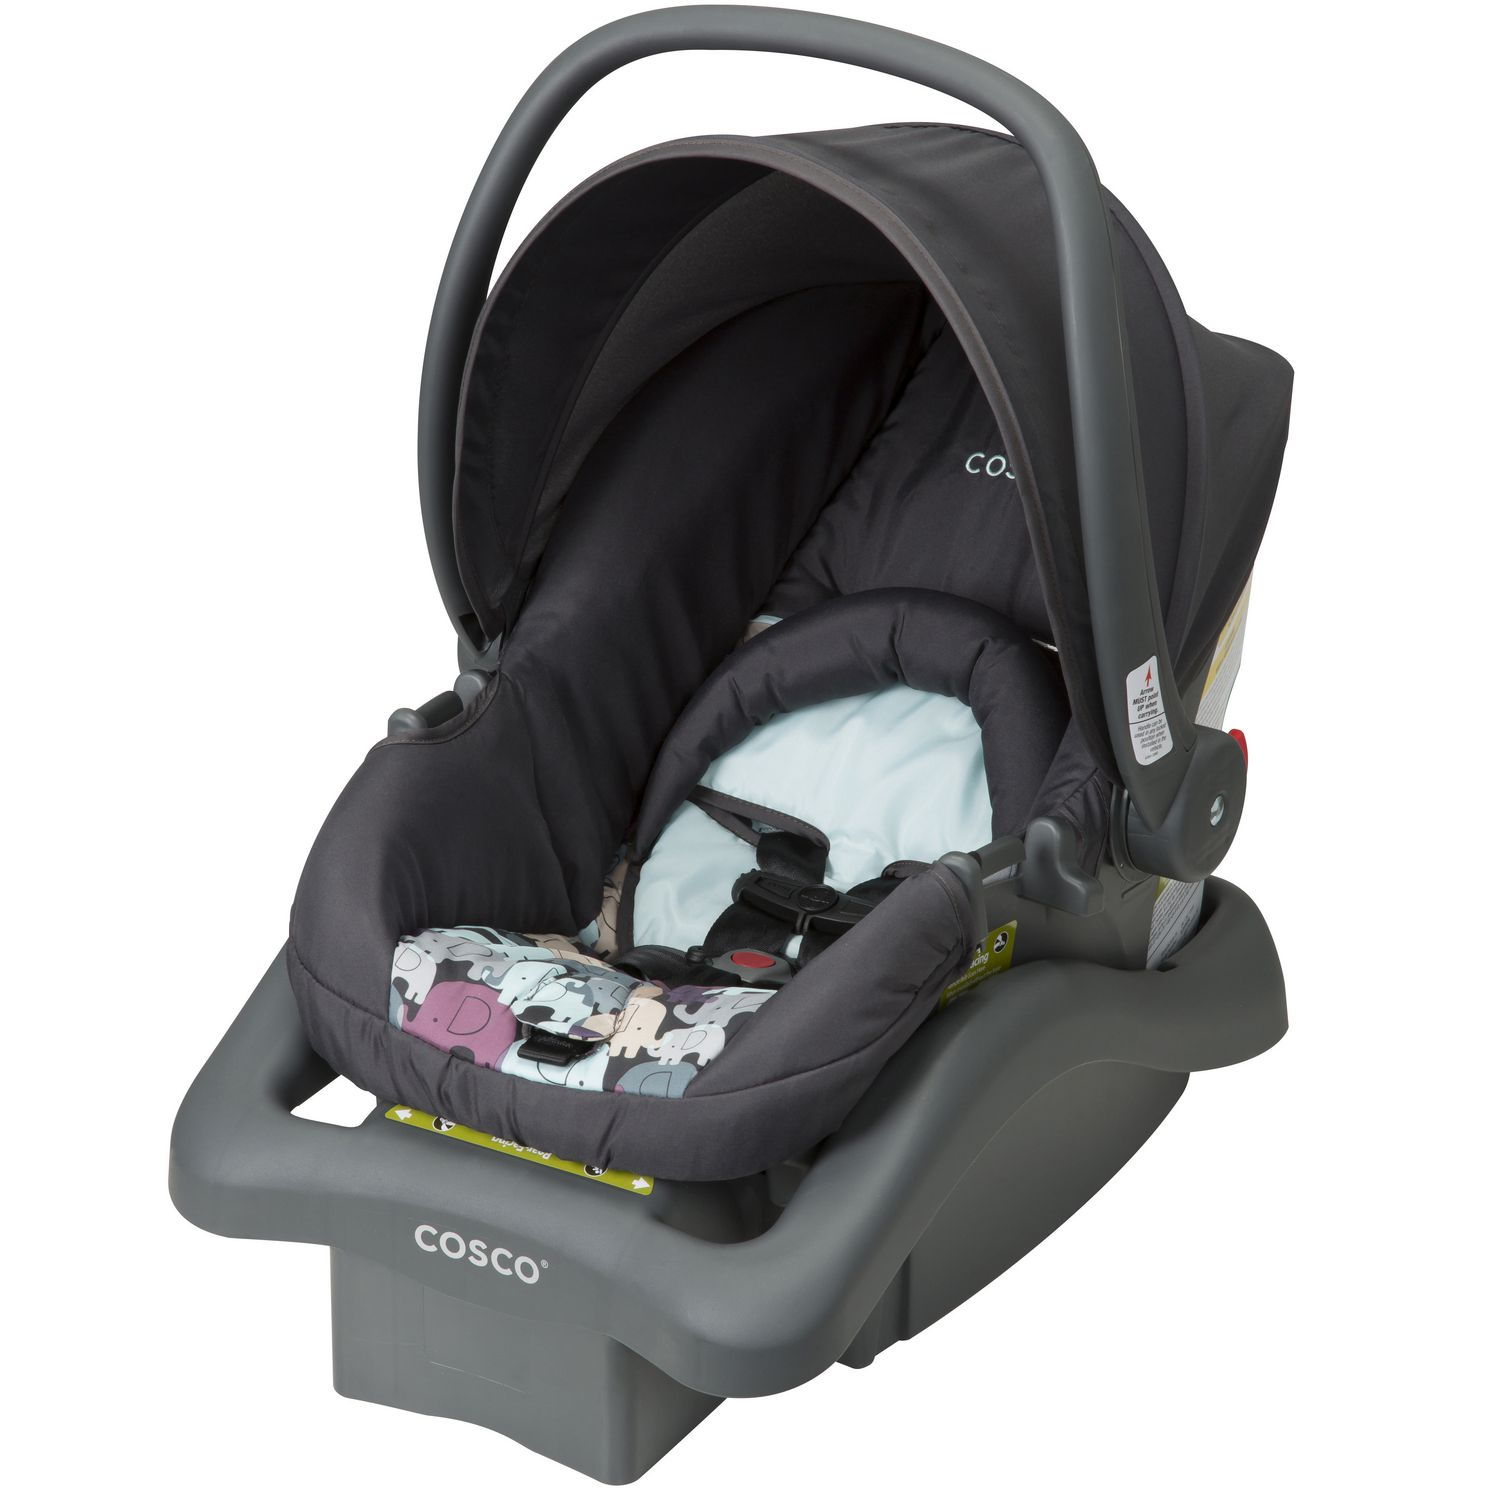 Infant Car Seat Graco Vs Britax